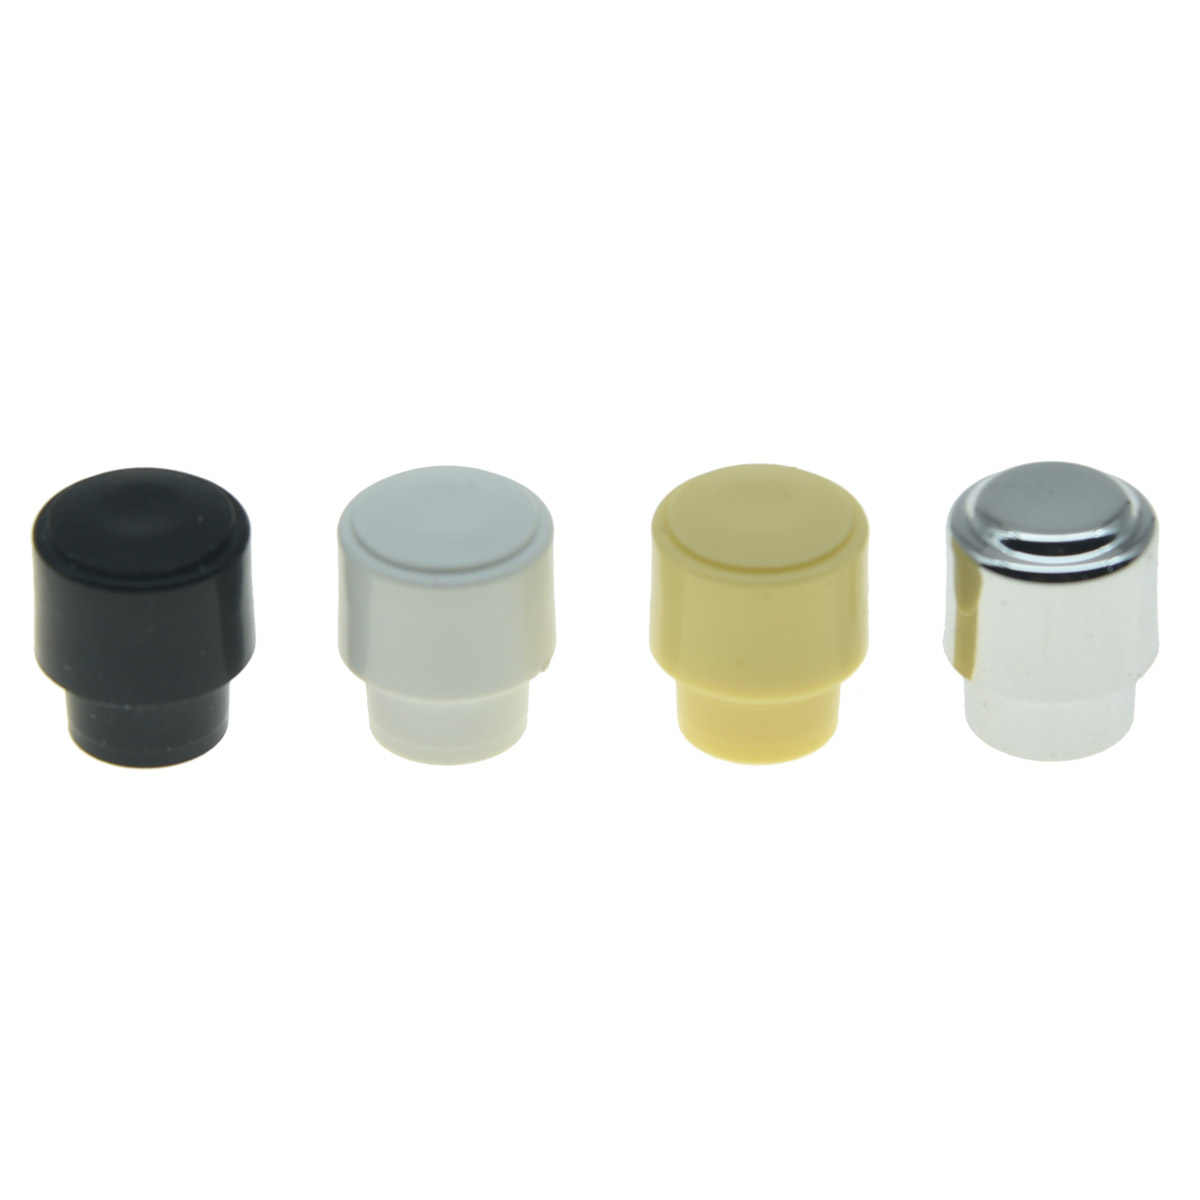 KAISH Pack of 2 Barrel Switch Tip 3 Way or 4 Way Pickup Selector Switch Knobs for U.S. Tele/Telecaster Black/Ivory/White